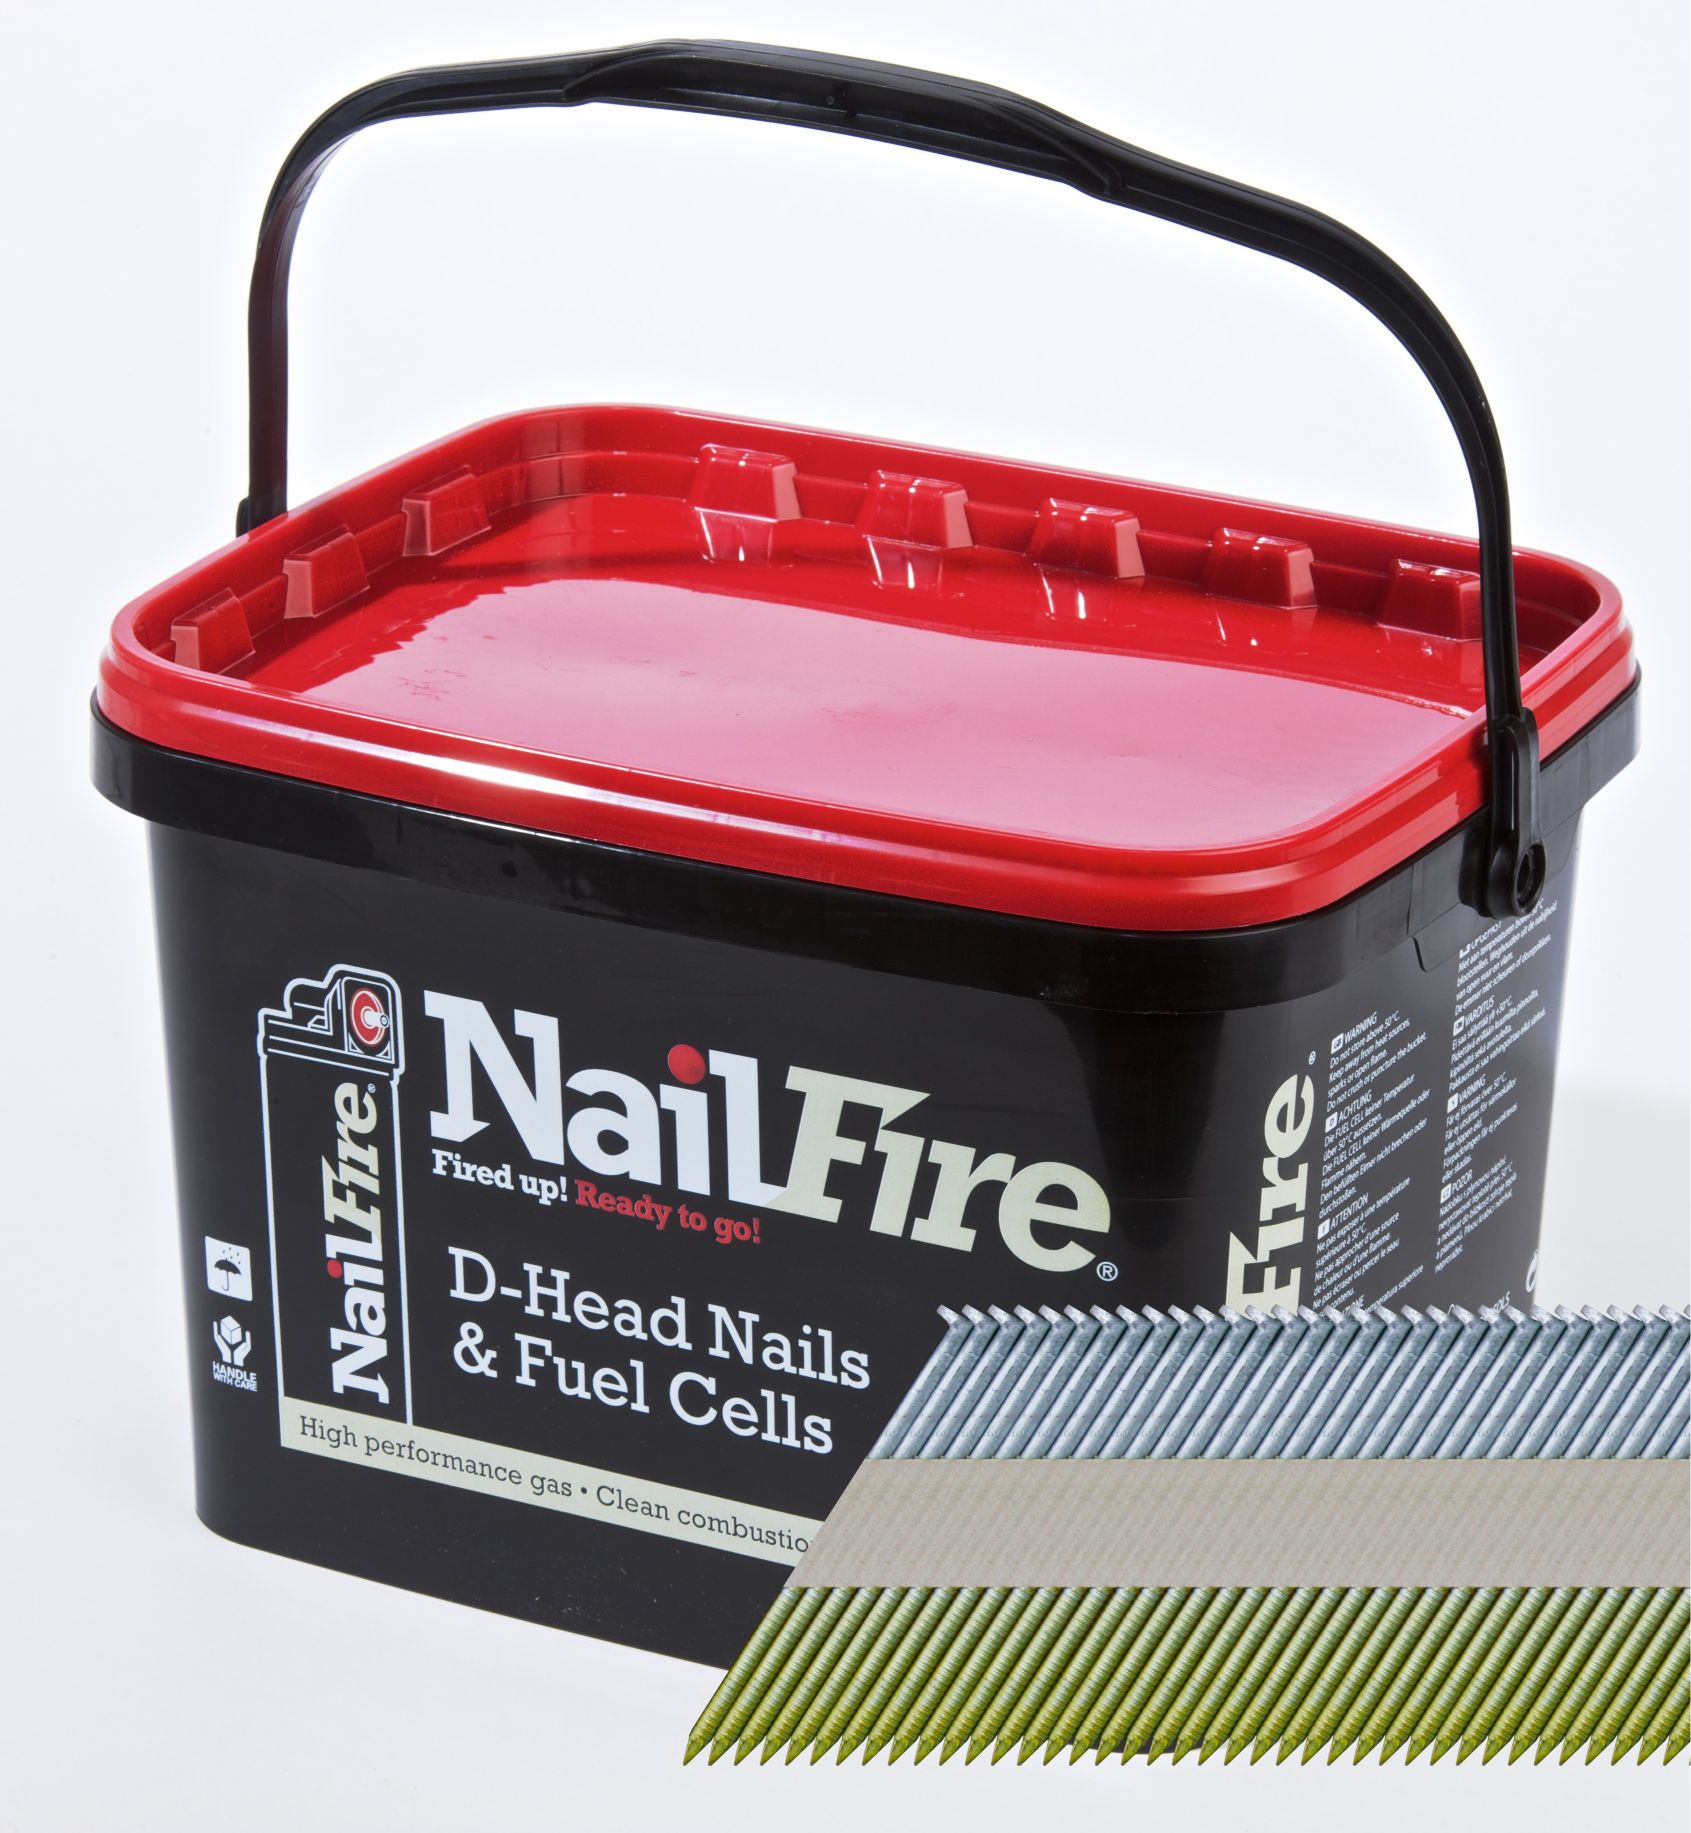 NAILFIRE 1ST FIX E/GALV RING NAILS & GAS 65MM (BOX OF 3000)